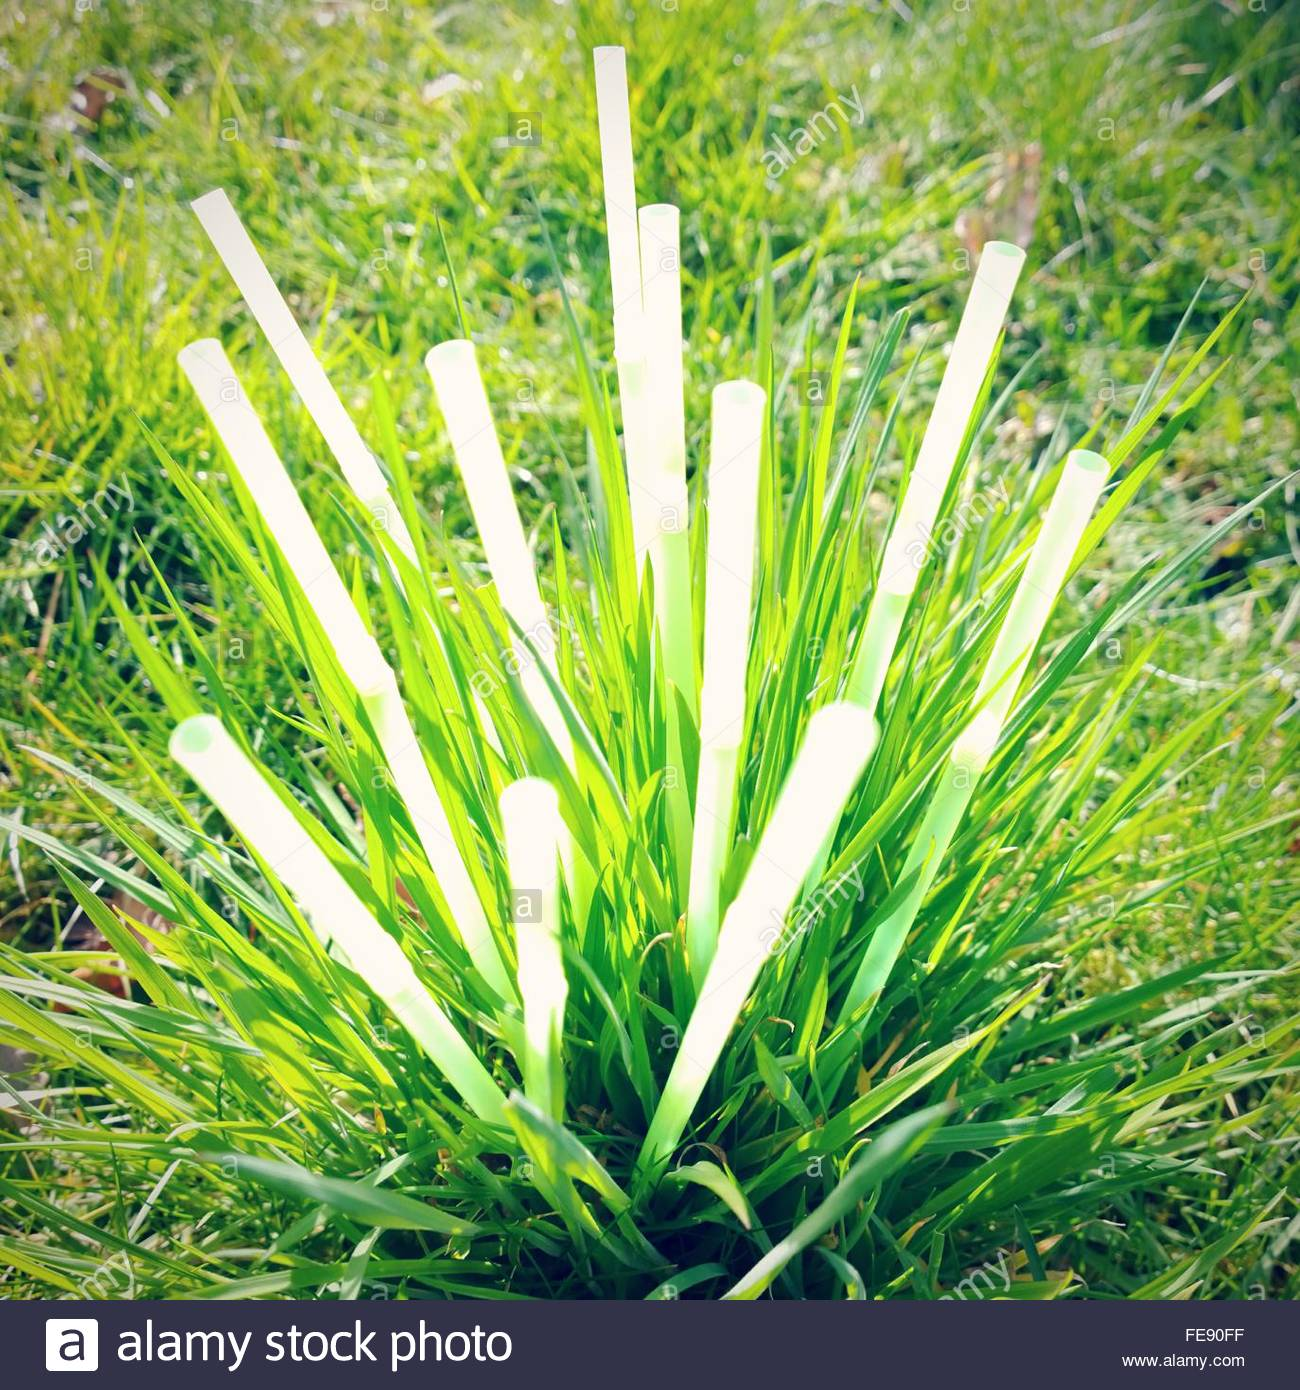 Close-Up Of Green Blade Of Grass - Stock Image